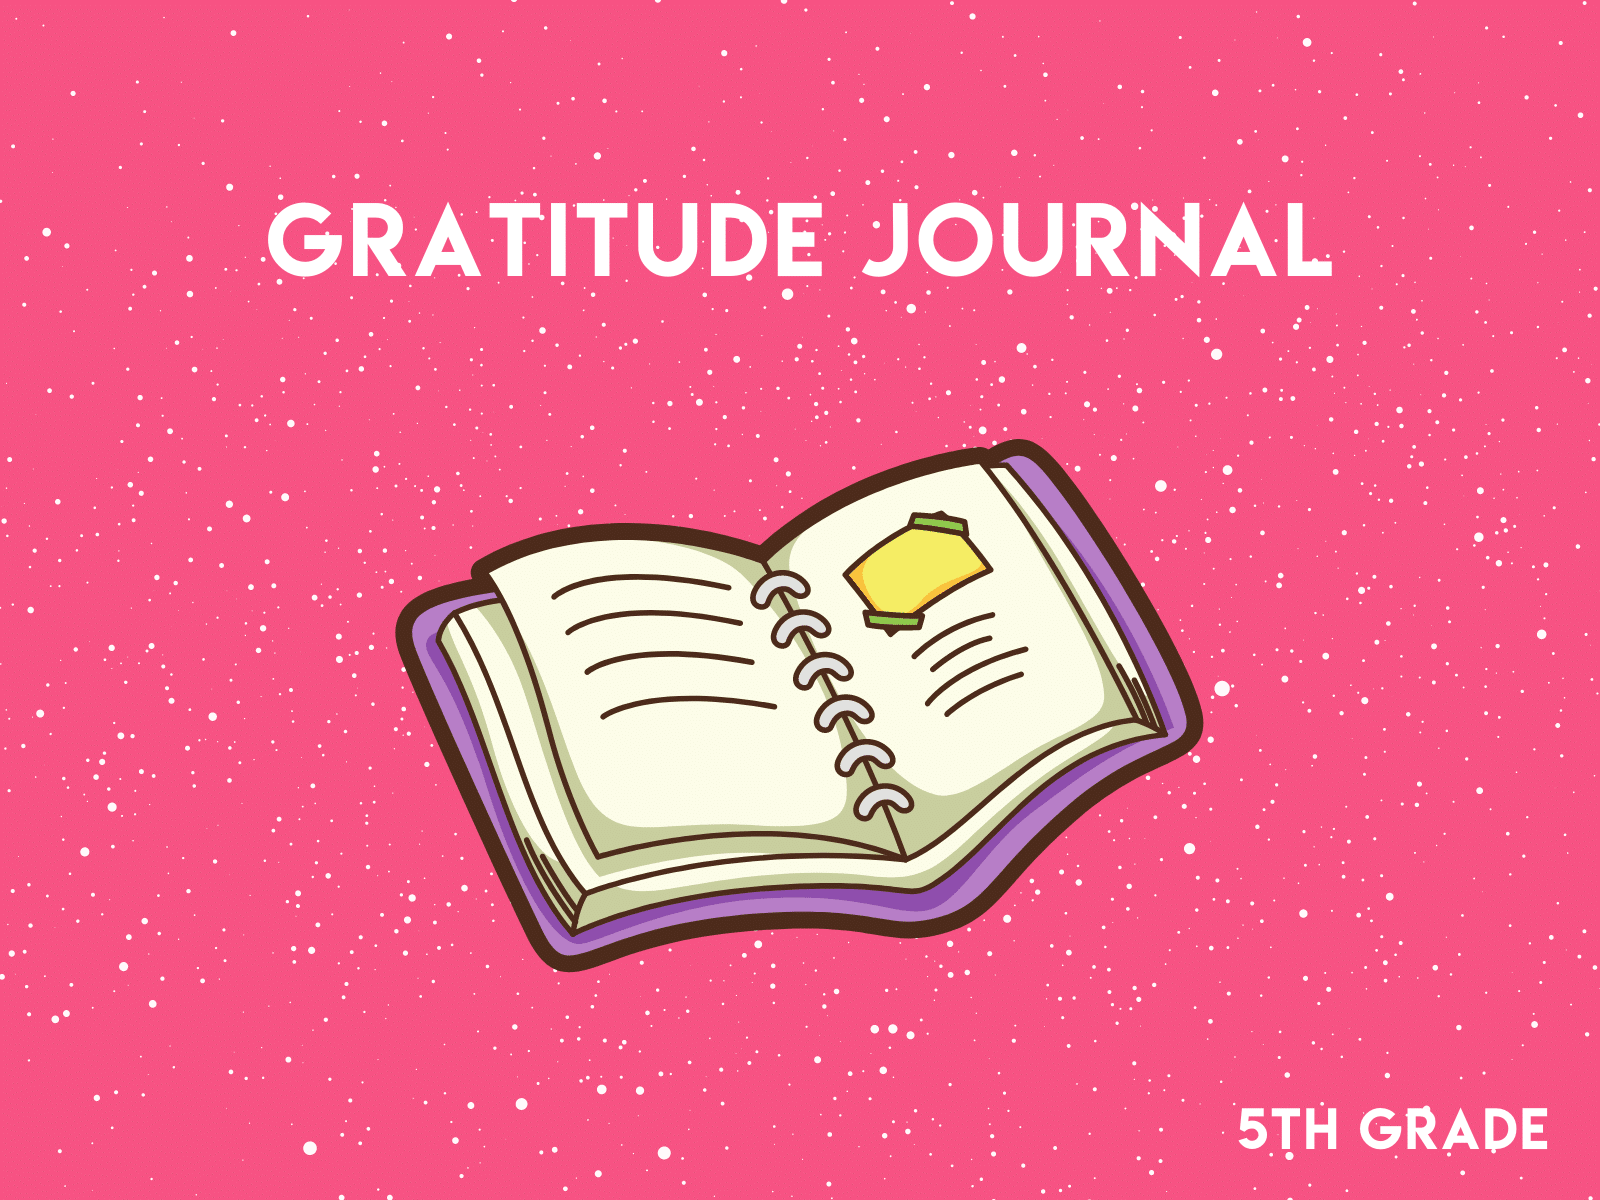 Gratitude journal for fifth grade writing practice   Free learning resource